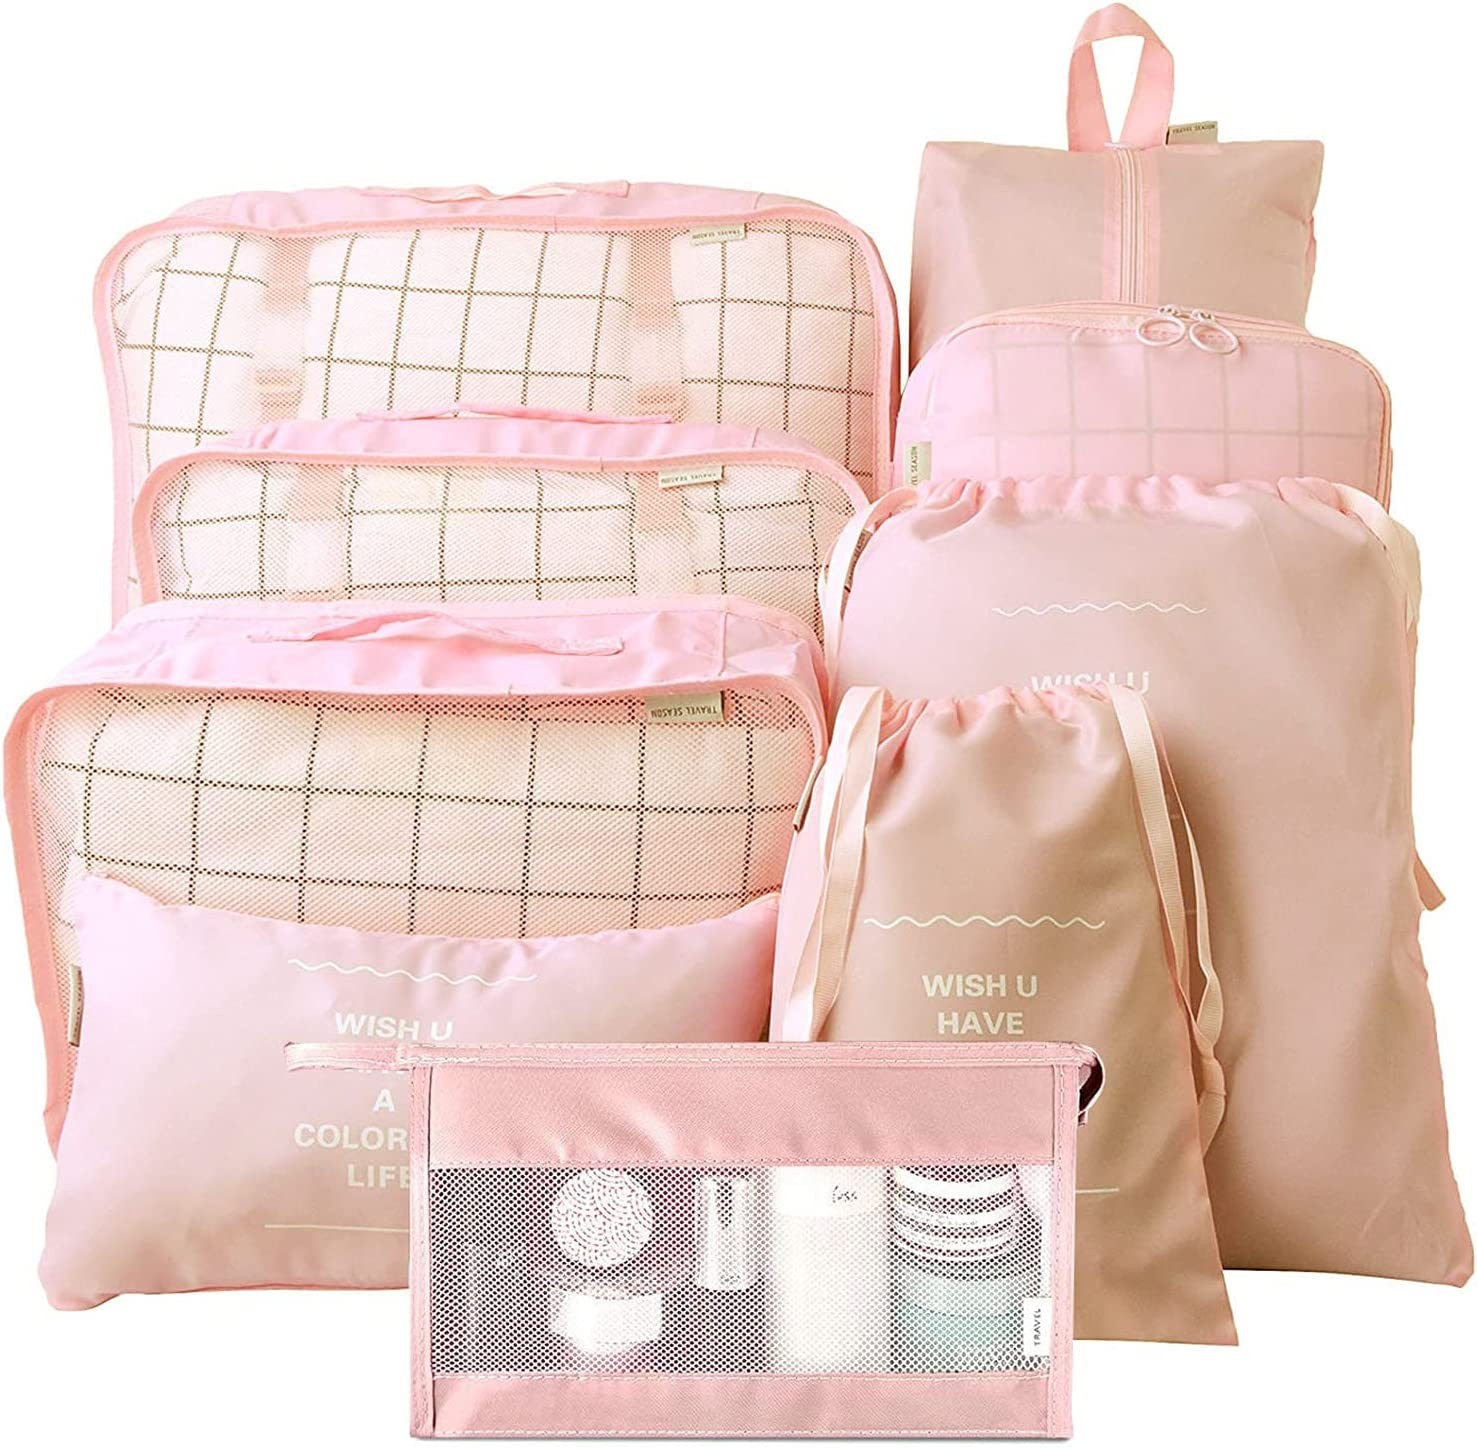 Packing Cubes for Lowest price challenge Charlotte Mall Travel Luggage 9 Organizer Suitcase